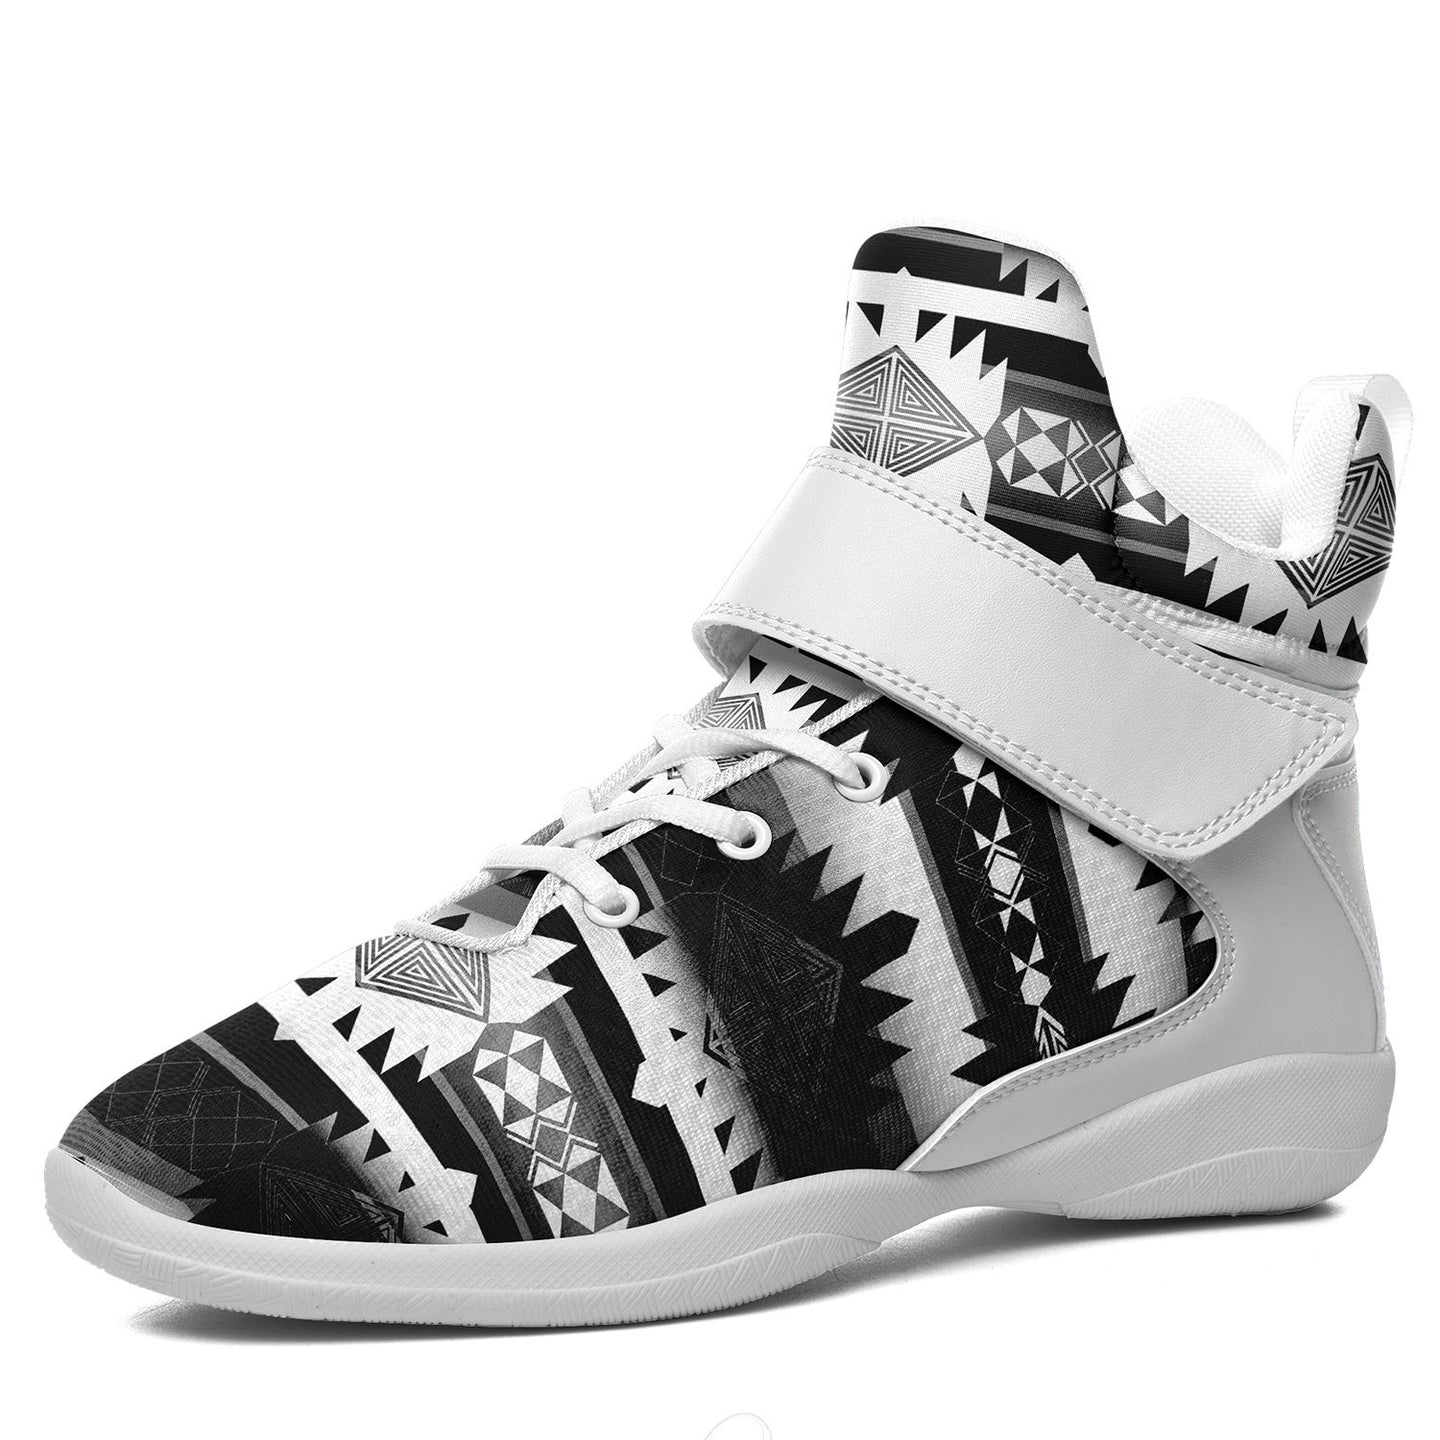 Okotoks Black and White Kid's Ipottaa Basketball / Sport High Top Shoes 49 Dzine US Child 12.5 / EUR 30 White Sole with White Strap